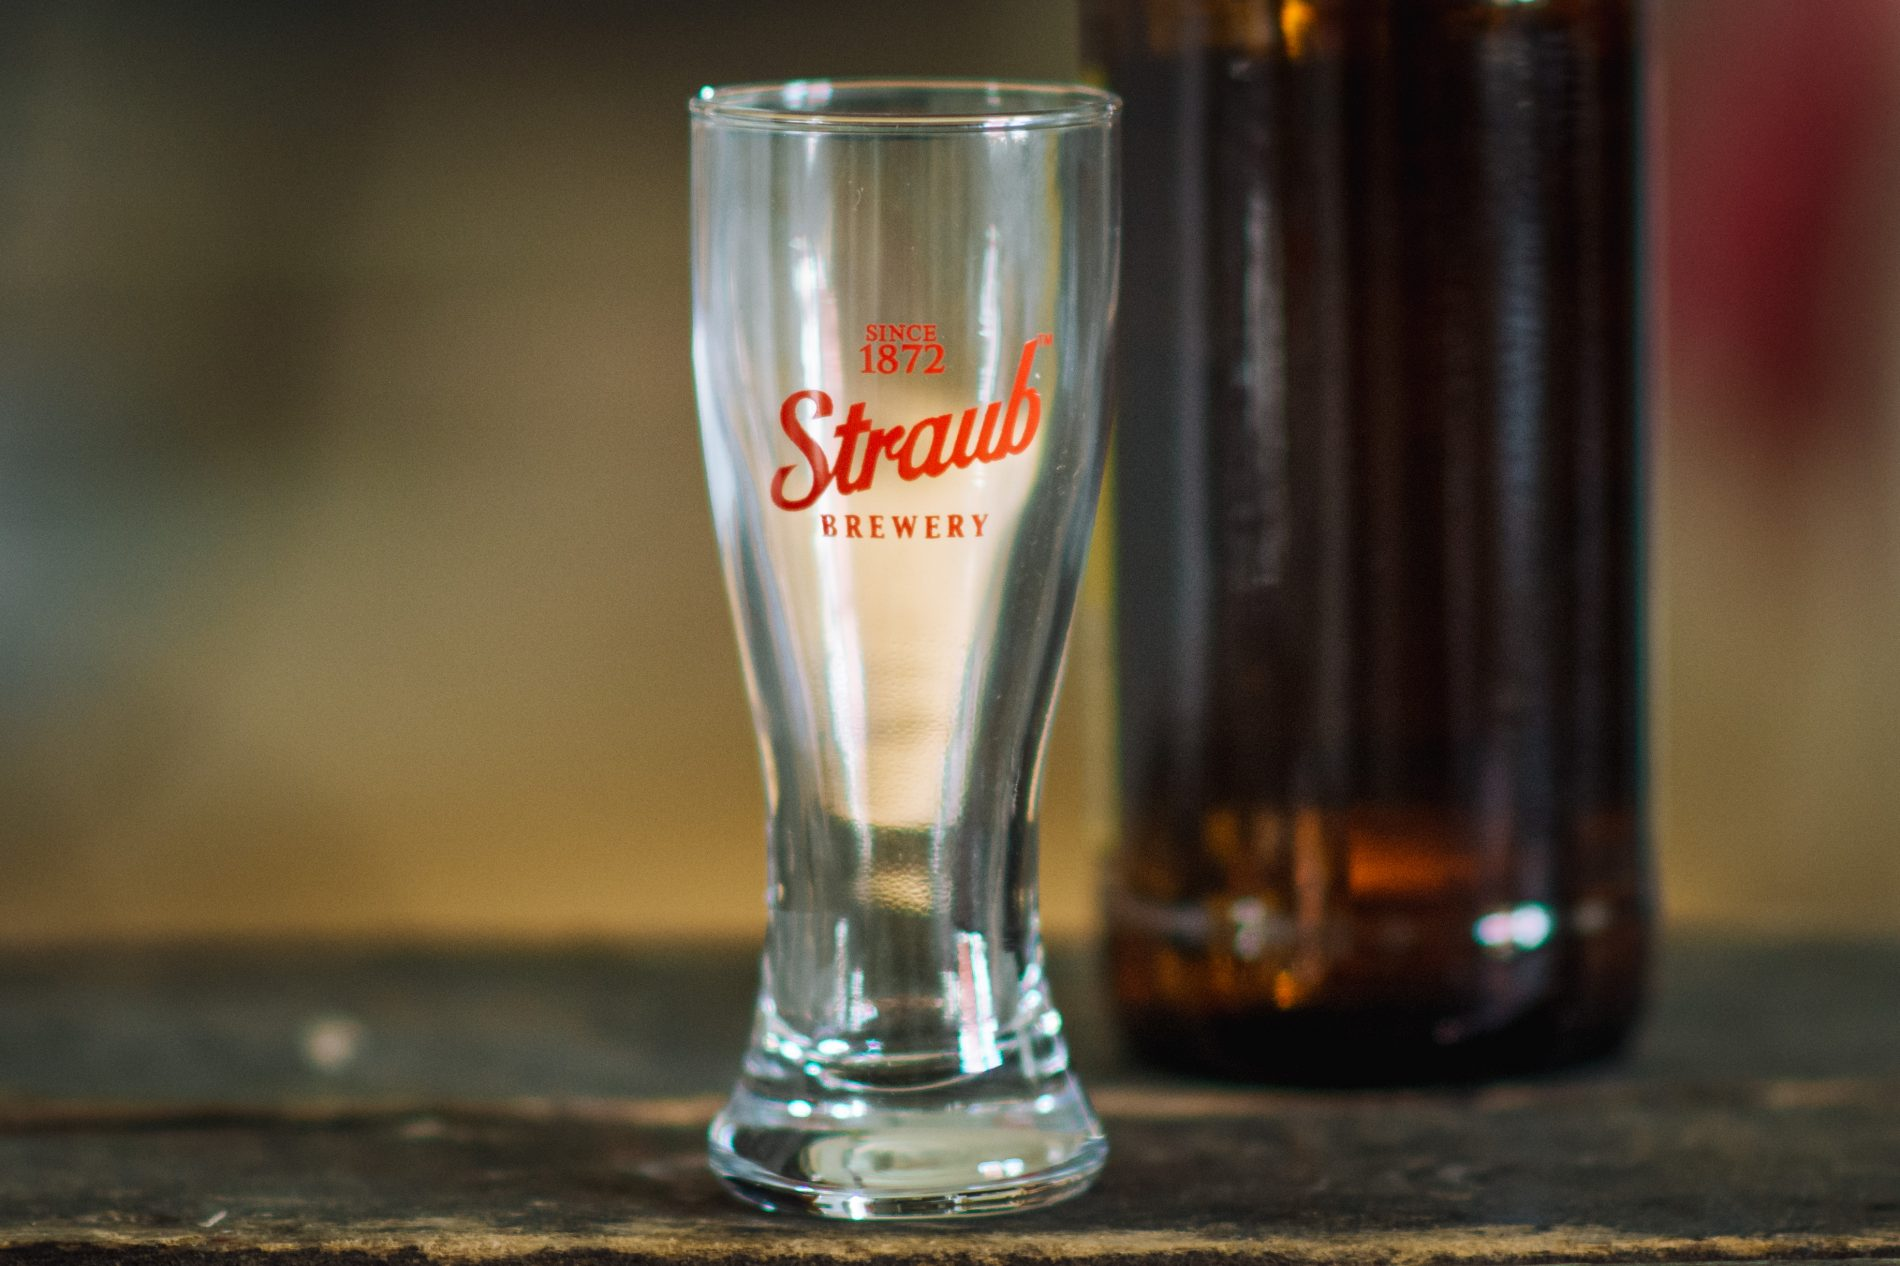 Straub shooter glass